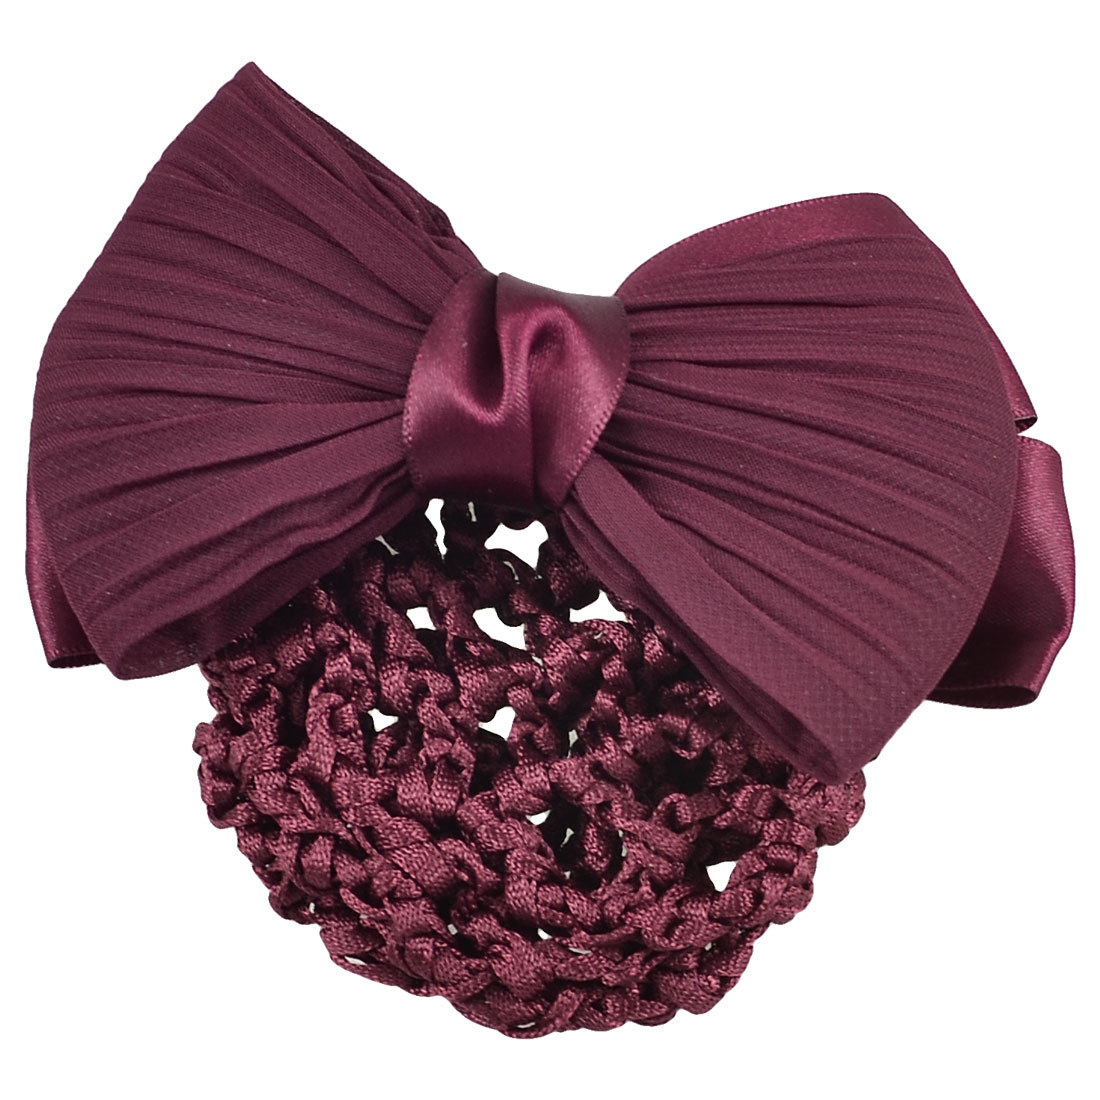 Burgundy Bowknot Snood Net Barrette Hairnet Hair Clip Bun Cover Accessories for Women